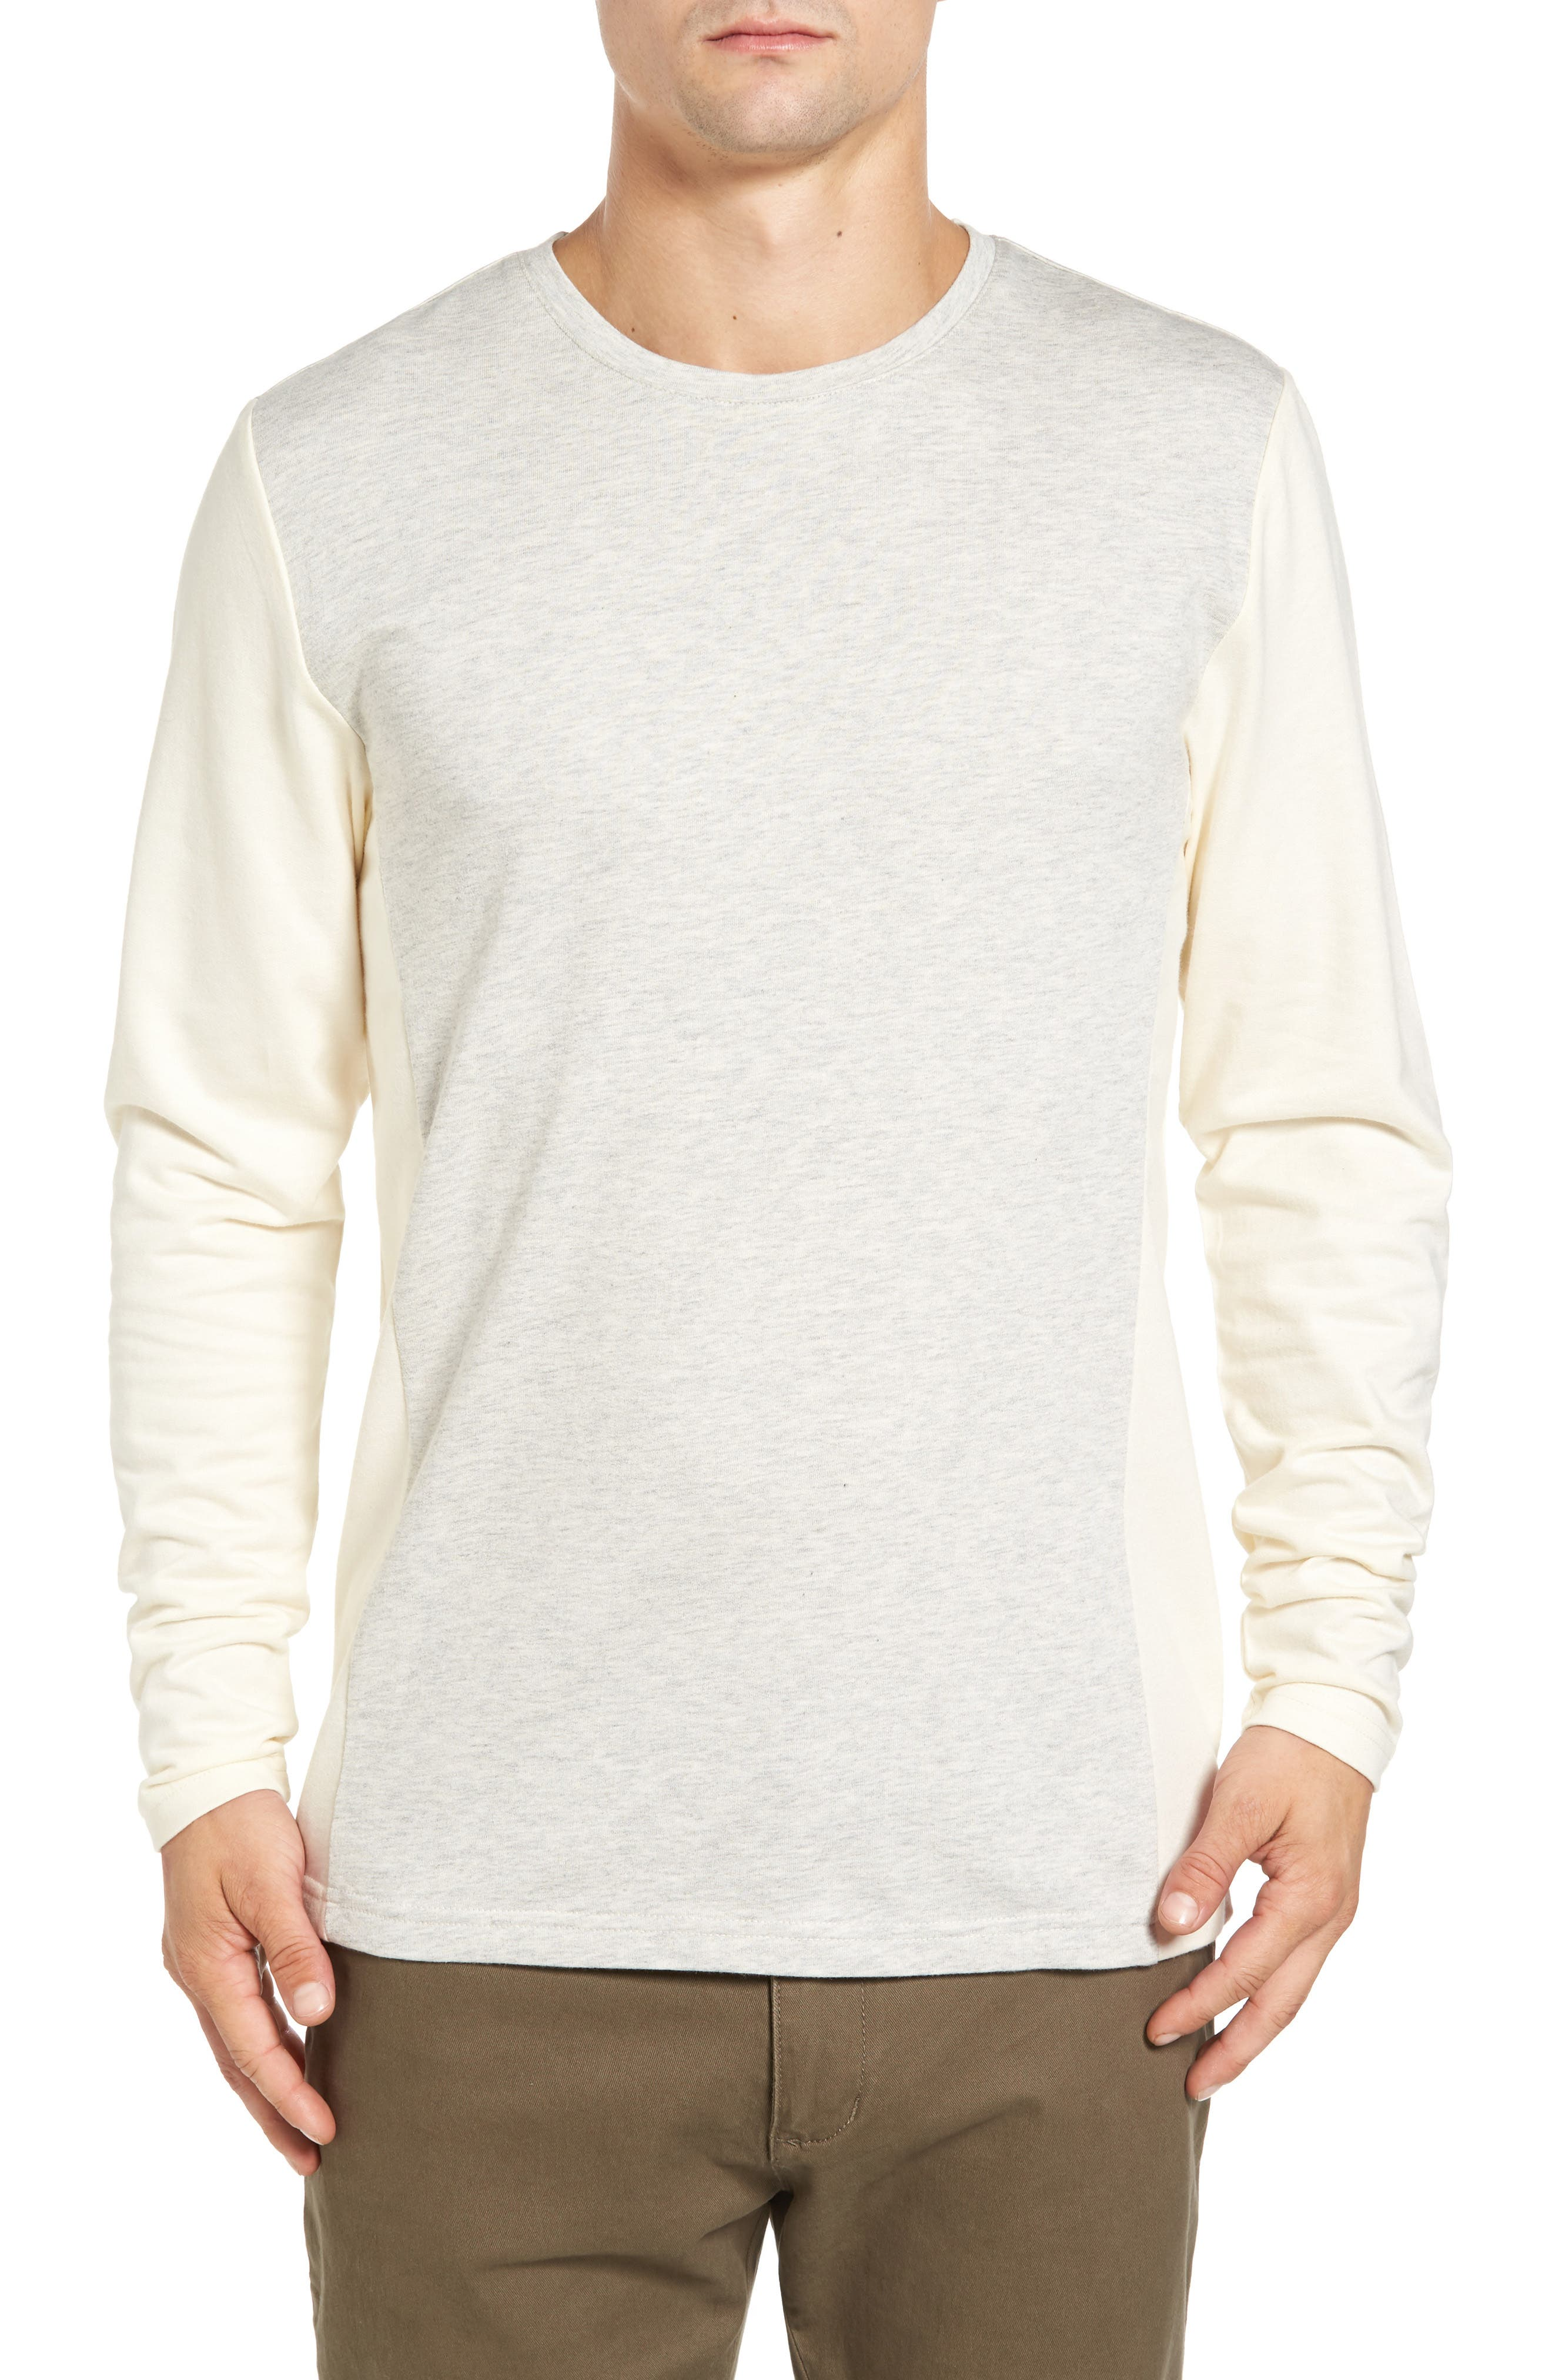 Singer + Sargent Cut and Sew French Crewneck Shirt